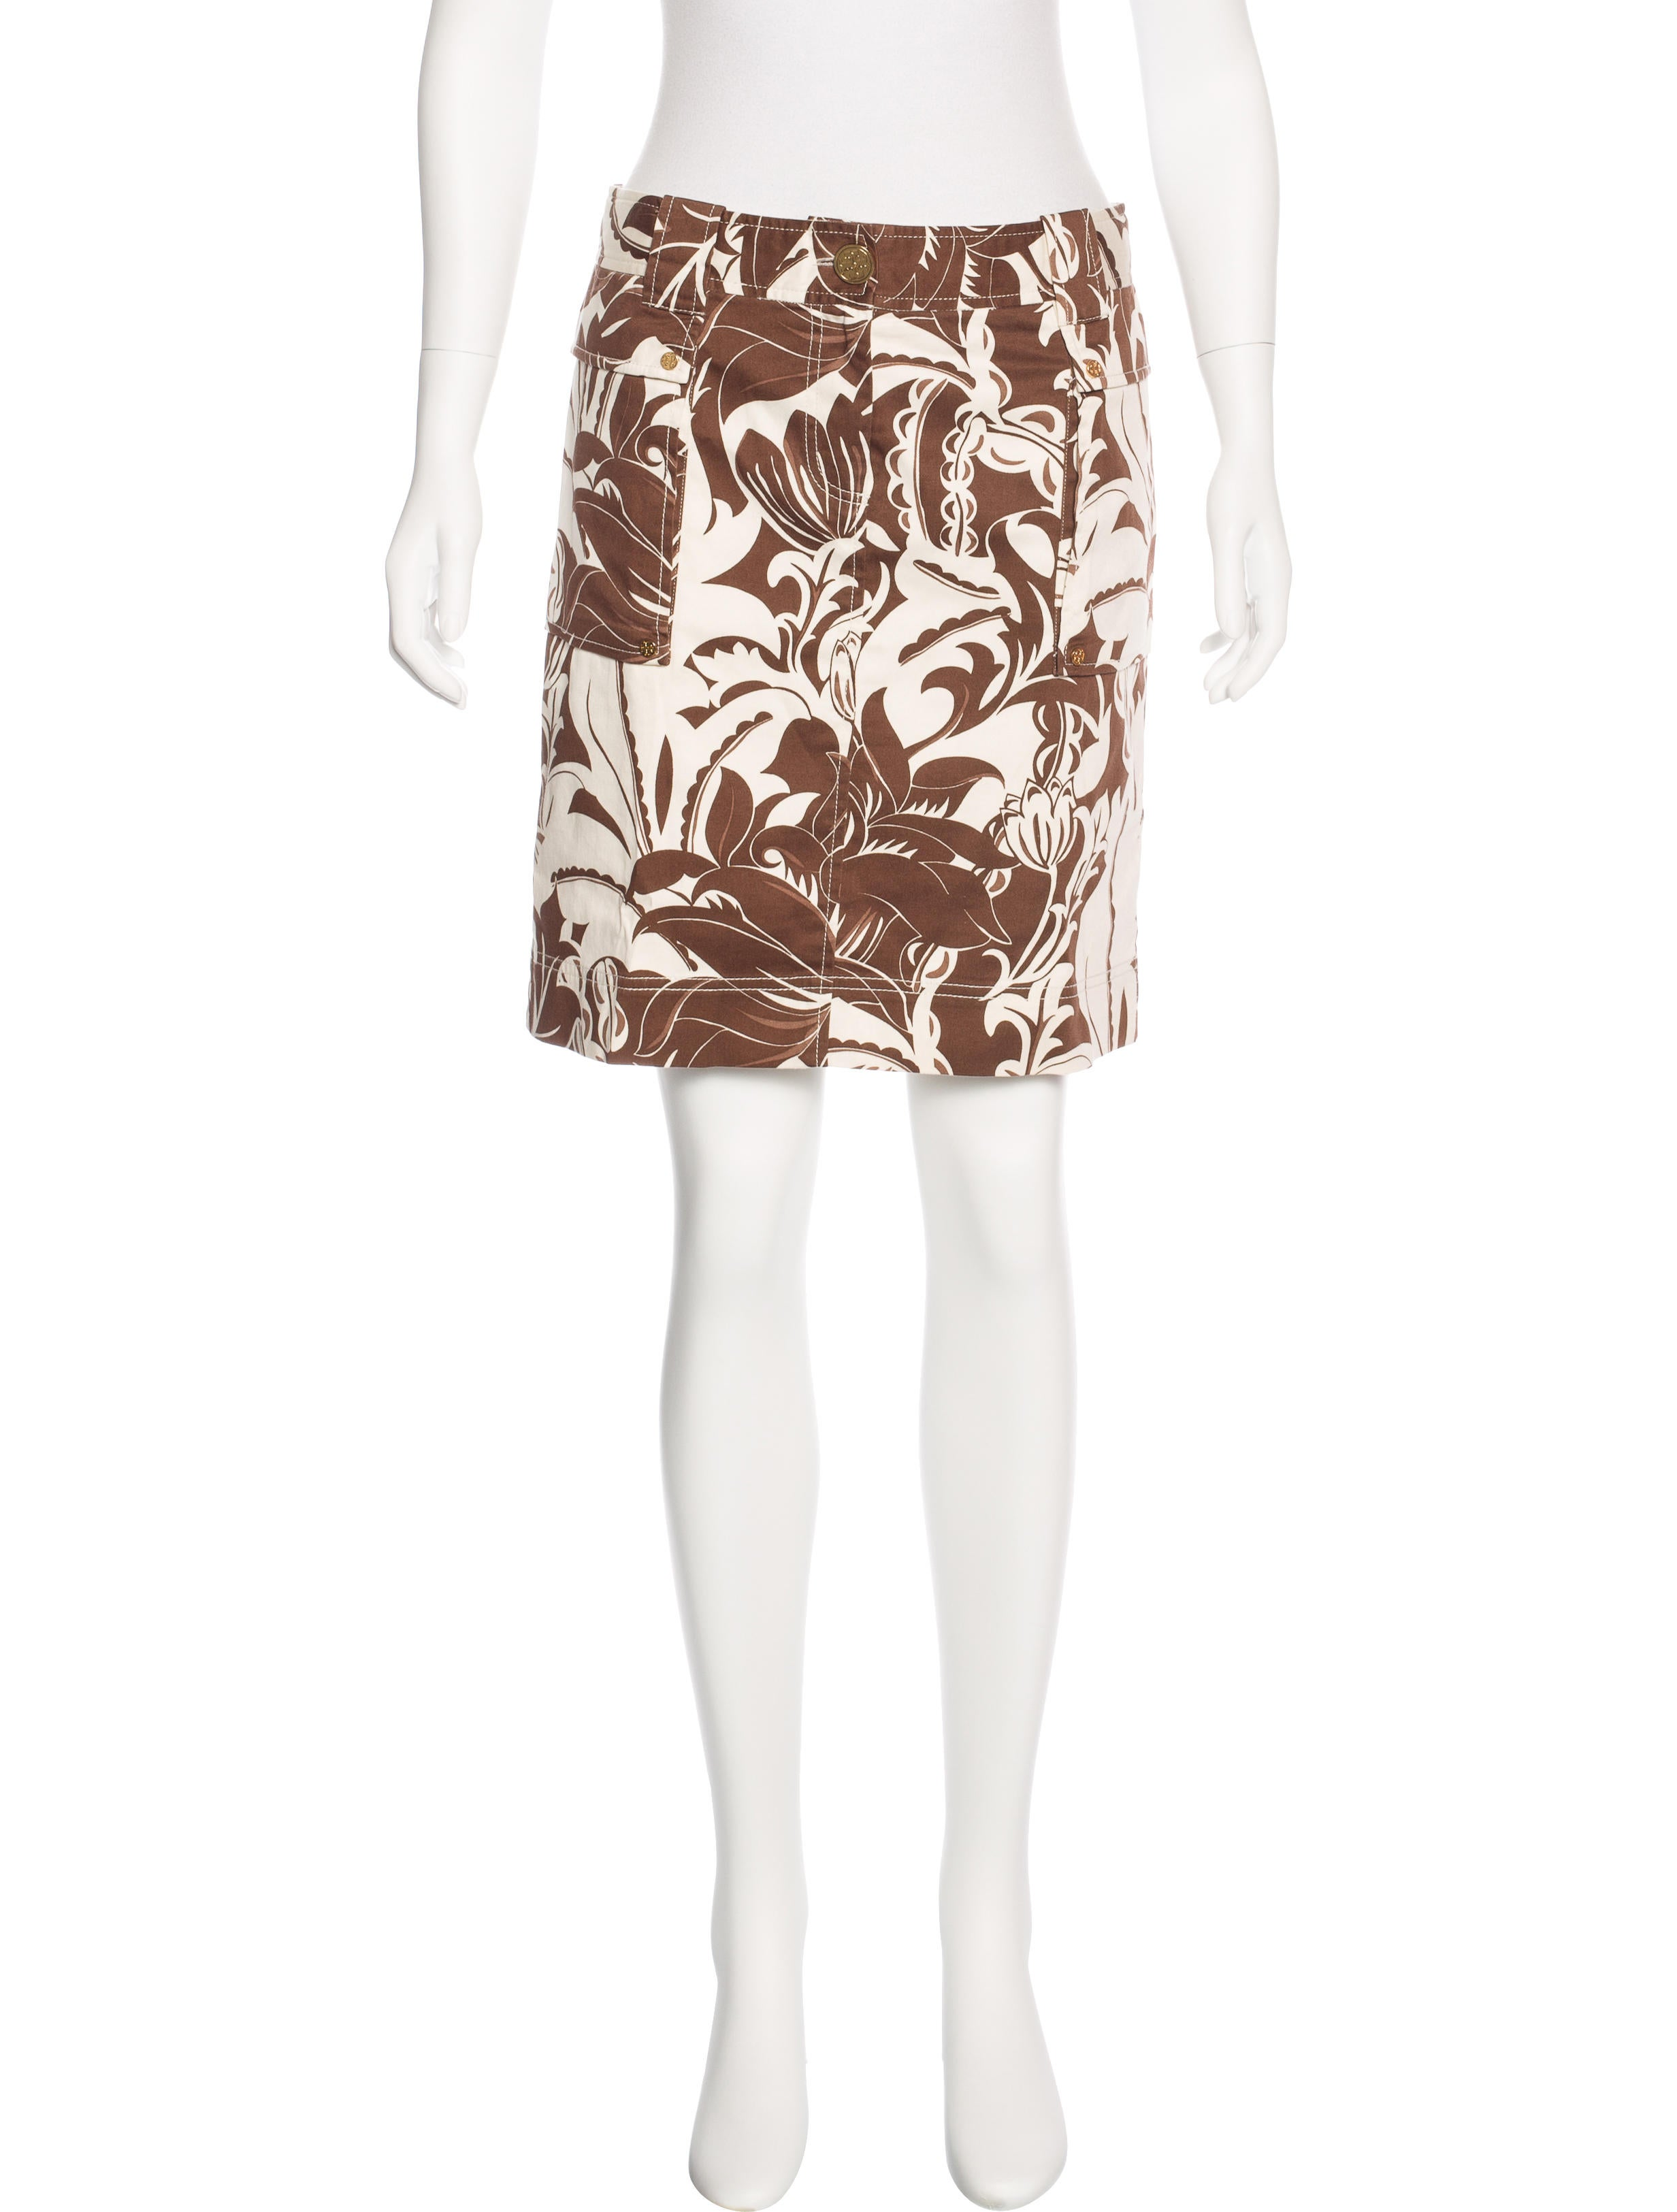 tory burch floral print mini skirt clothing wto96903